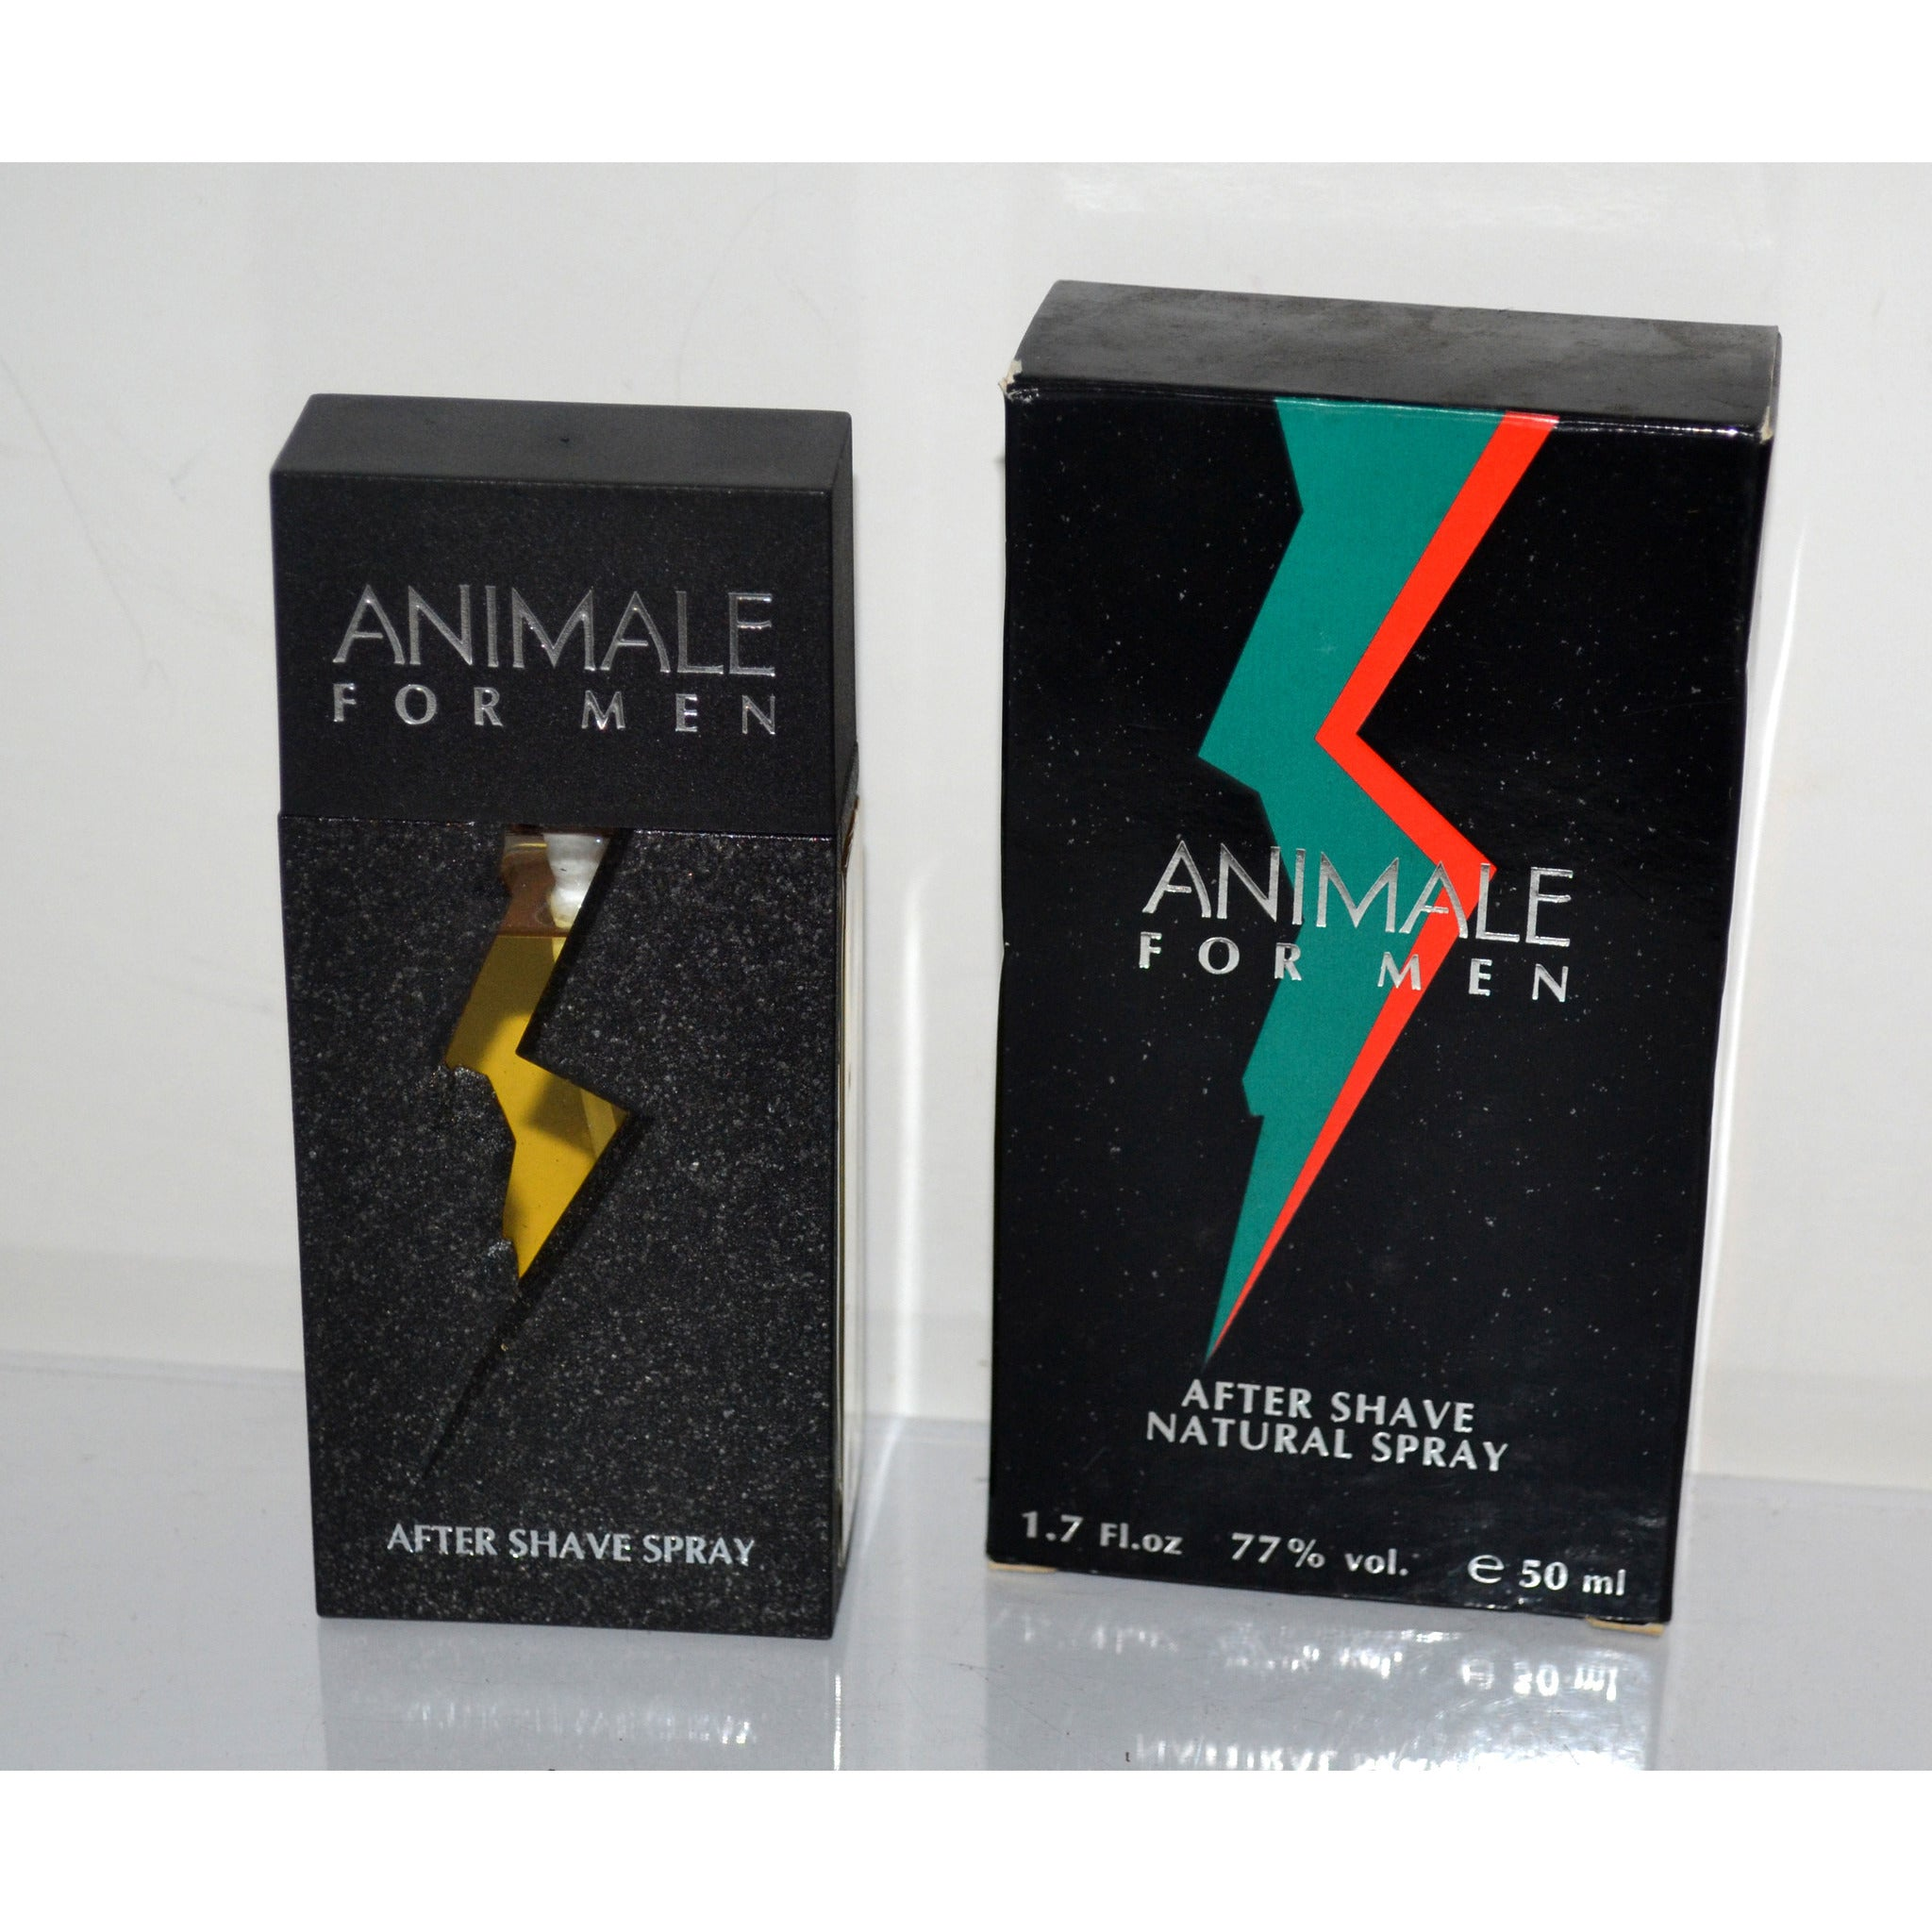 Original Animale For Men After Shave